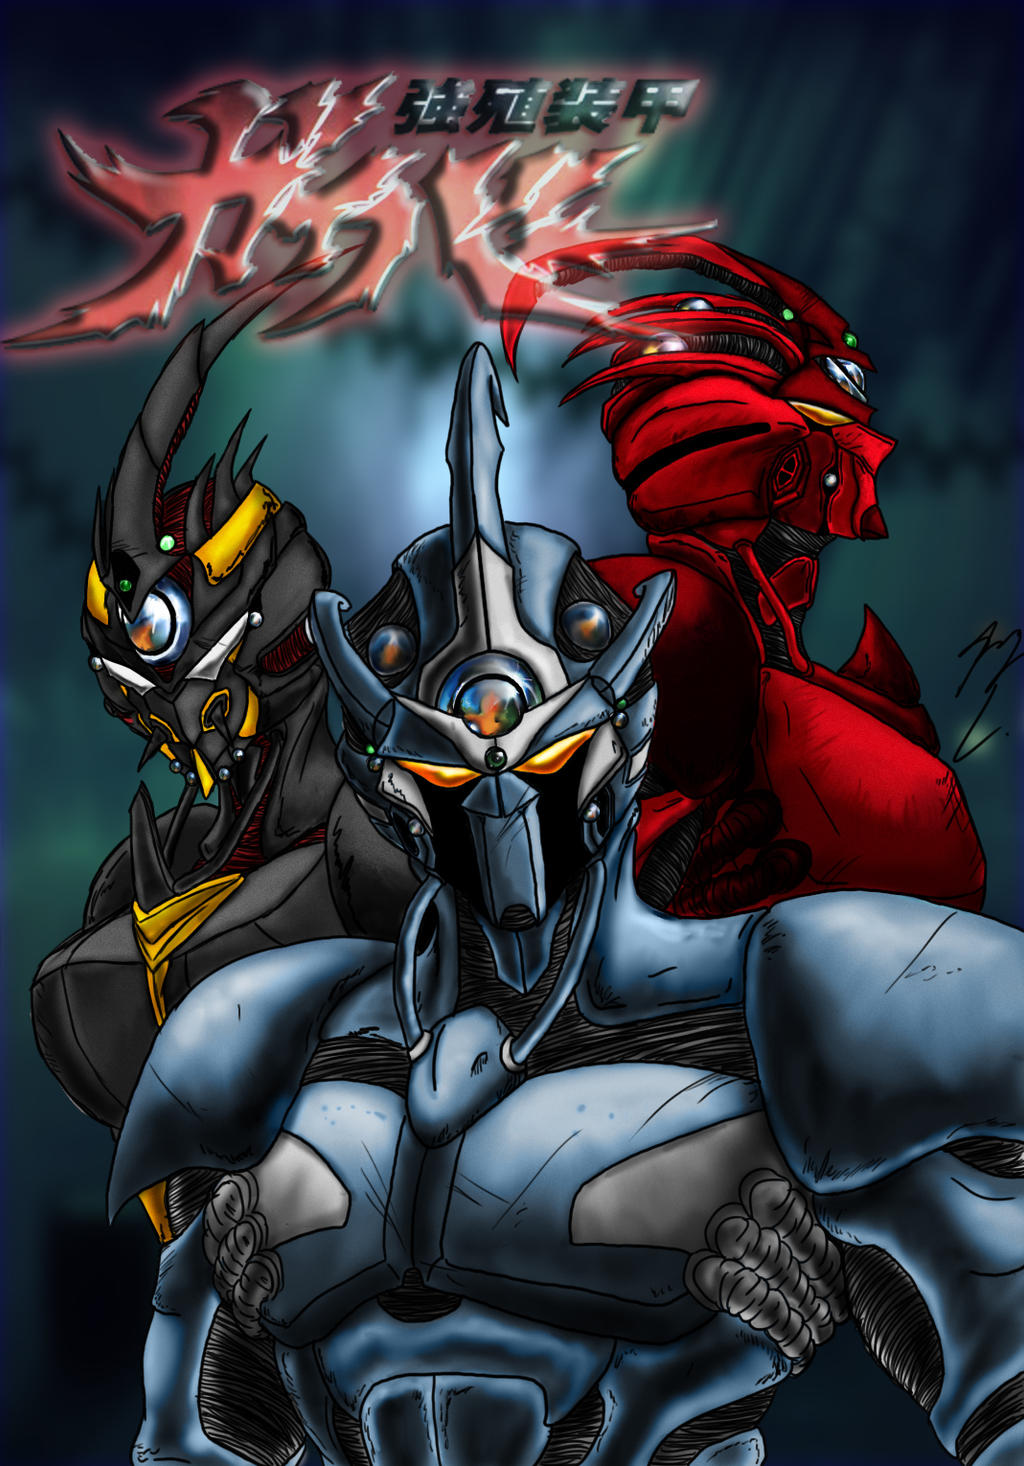 bio_boosted_armor_guyver_pd_by_guyver89-d49pva5.jpg